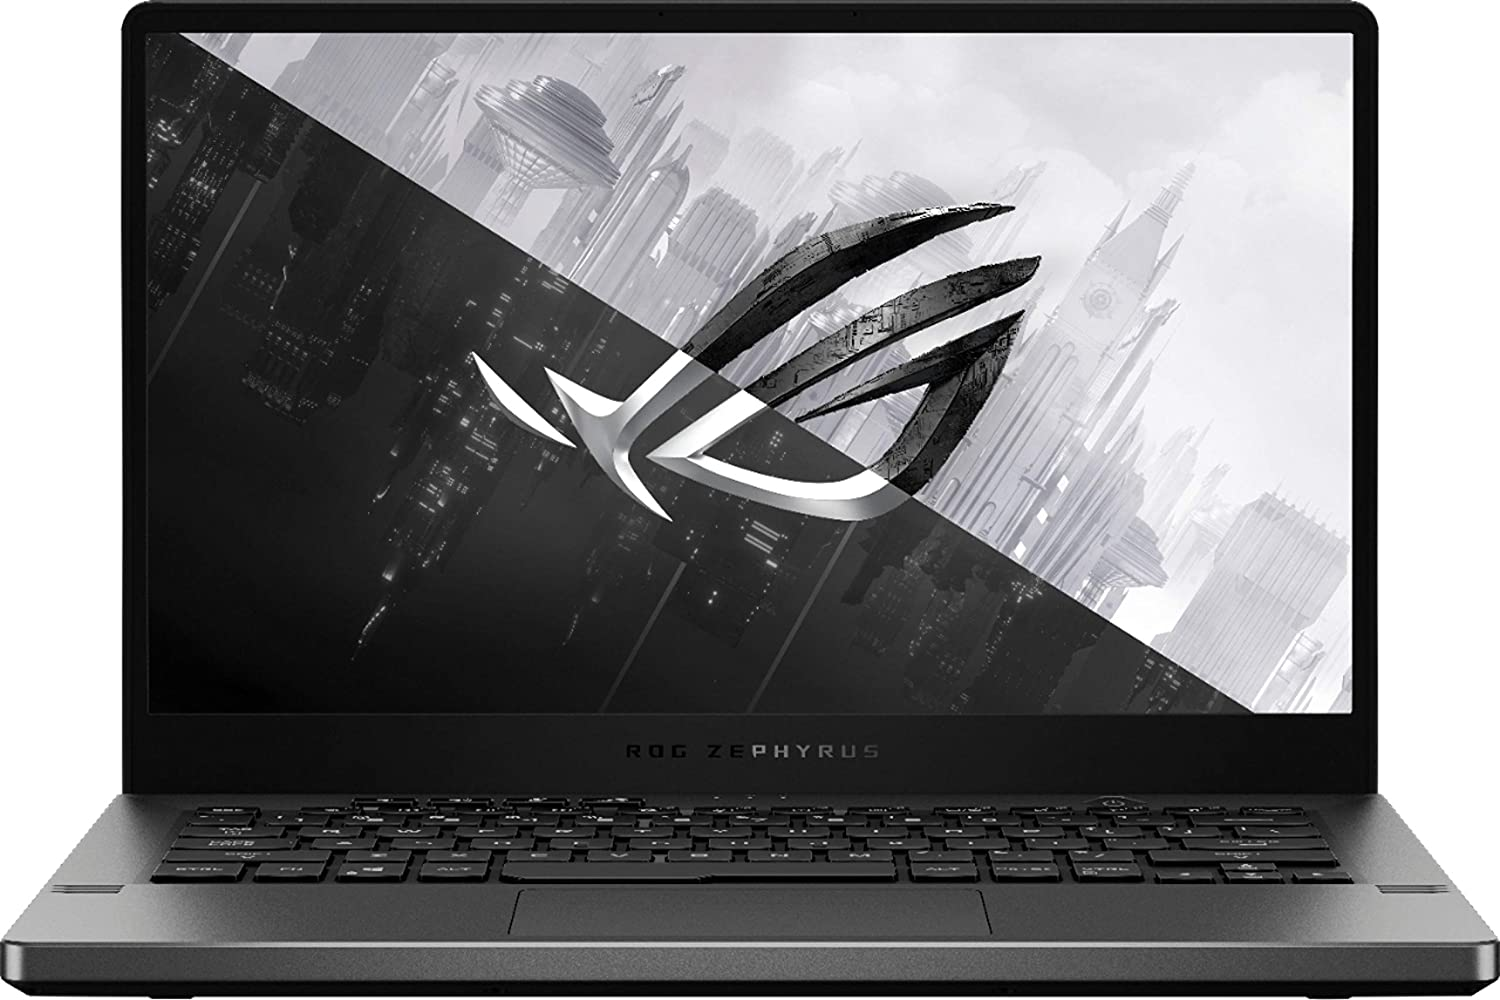 "2020 ASUS ROG Zephyrus G14 14"" VR Ready FHD Gaming Laptop,8 cores AMD Ryzen 7 4800HS(Upto 4.2 GHzBeat i7-10750H),Backlight,HDMI,USB C,NVIDIA GeForce GTX 1650,Gray,Win 10 (8GB RAM